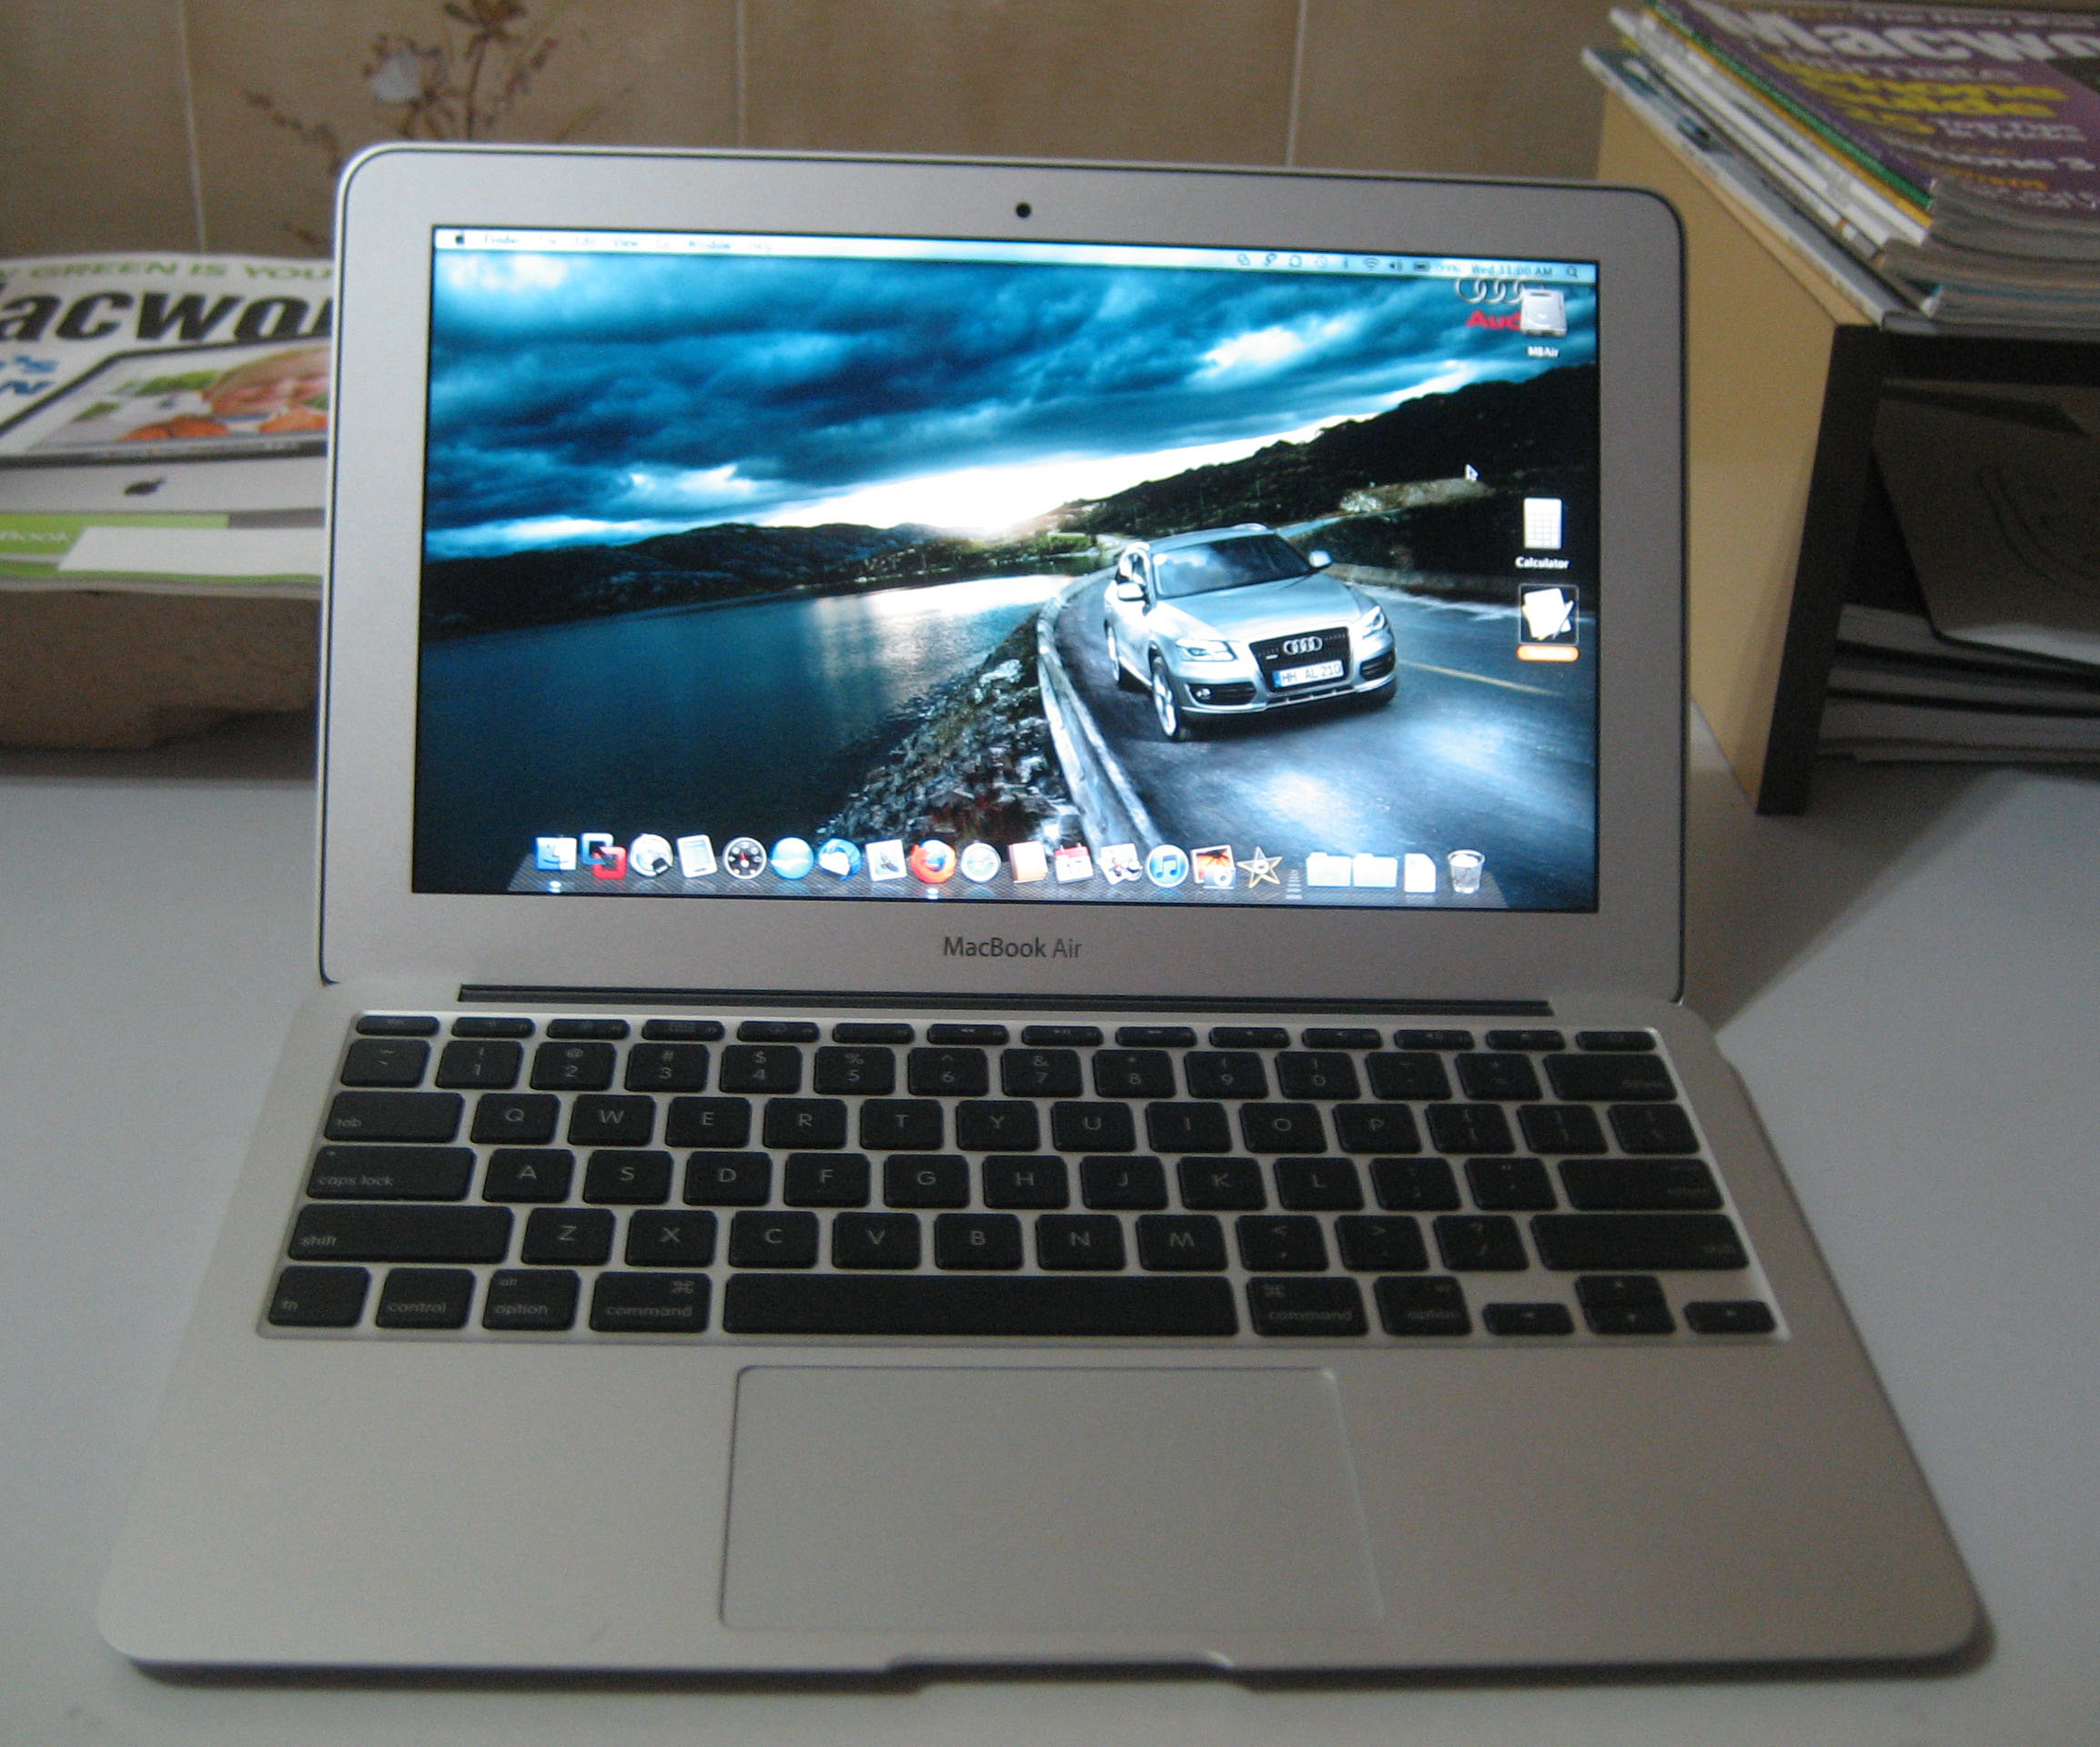 macbook air 11 6 2010 model my impressions and. Black Bedroom Furniture Sets. Home Design Ideas